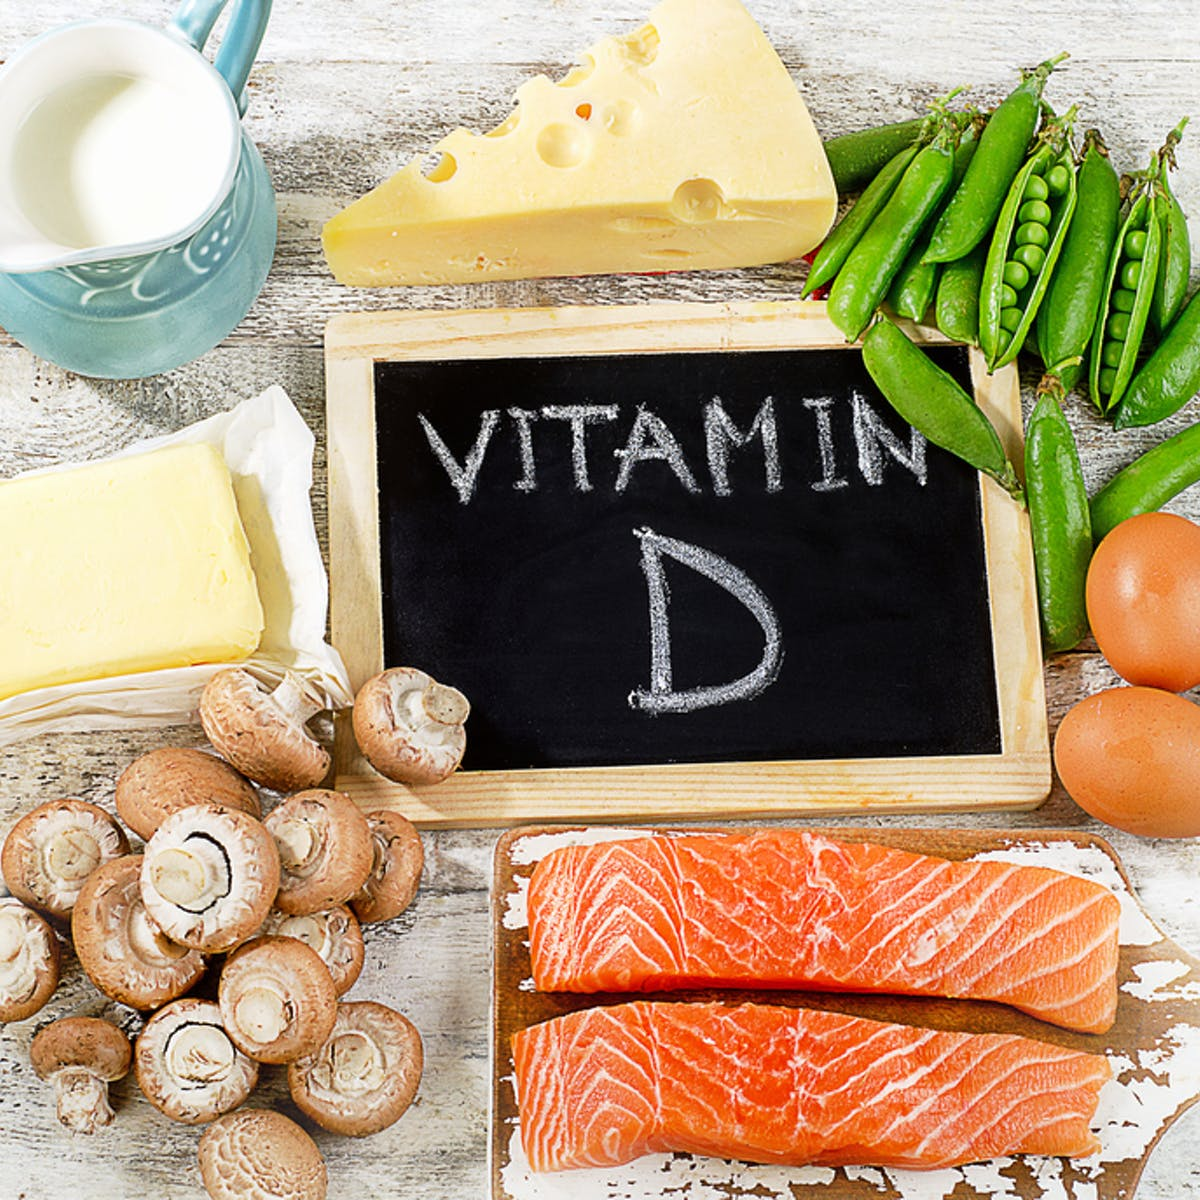 How vitamin D can improve muscle strength